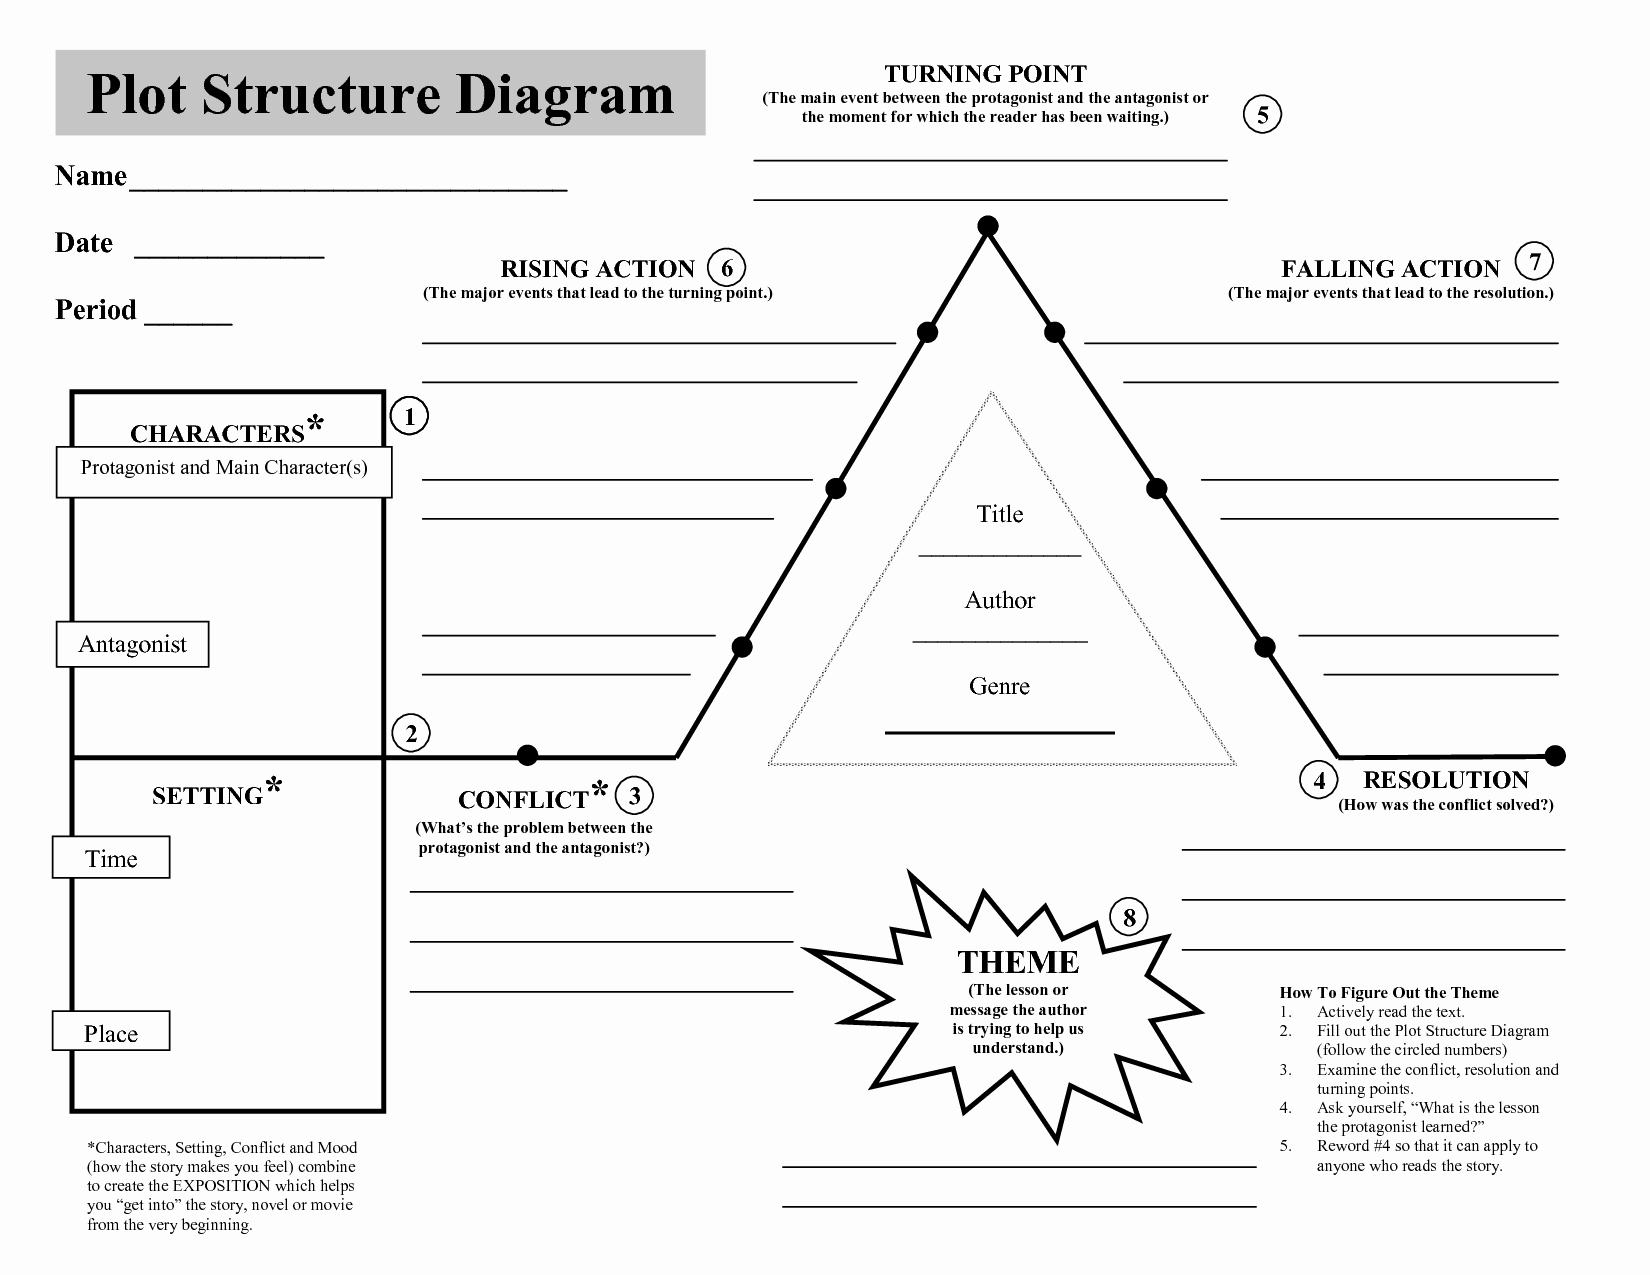 Plot Diagram Graphic organizer Lovely Plot Structure Diagram Download now Pdf